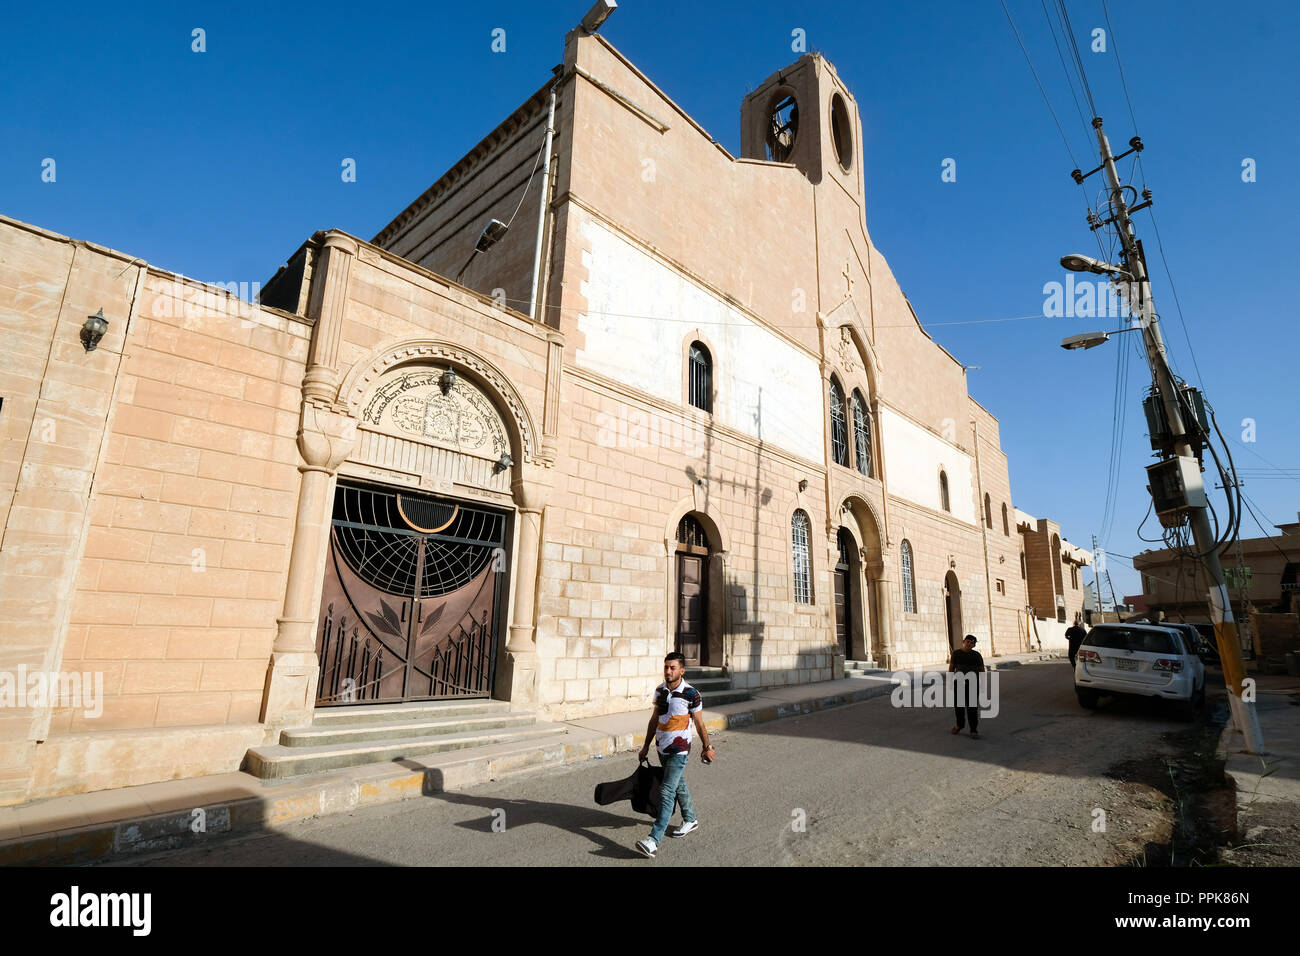 The Immaculate Conception Church of Quaraqosh (Hamdaniya), Iraq, Autonomous Kurdish Region - Assyrisch-Orthodoxe Kathedrale von Quaraqosh, Irak, Autonome Kurdische Region - Stock Image